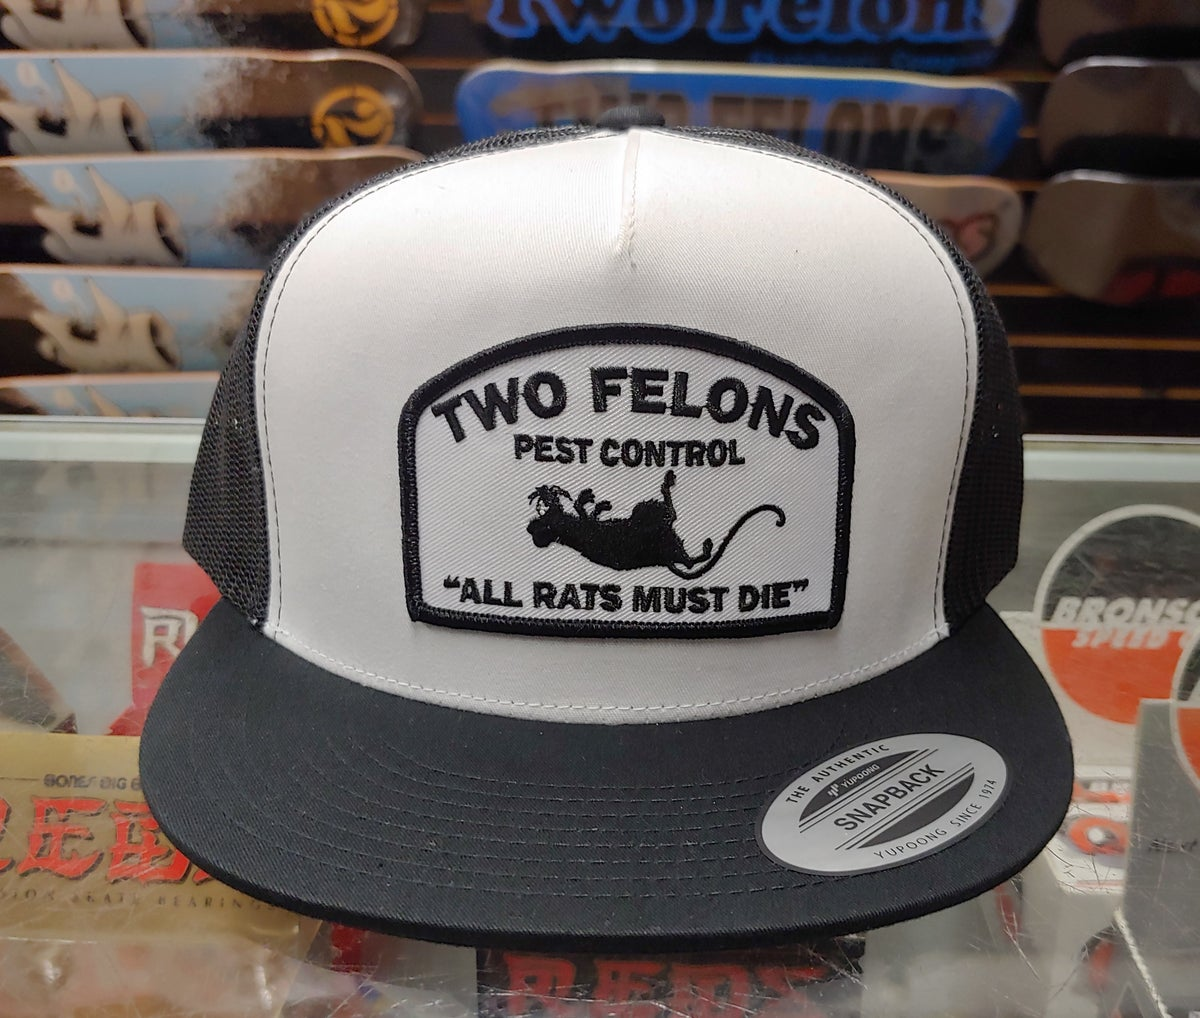 "Two Felons ""Pest Control"" V1 (white/black)"